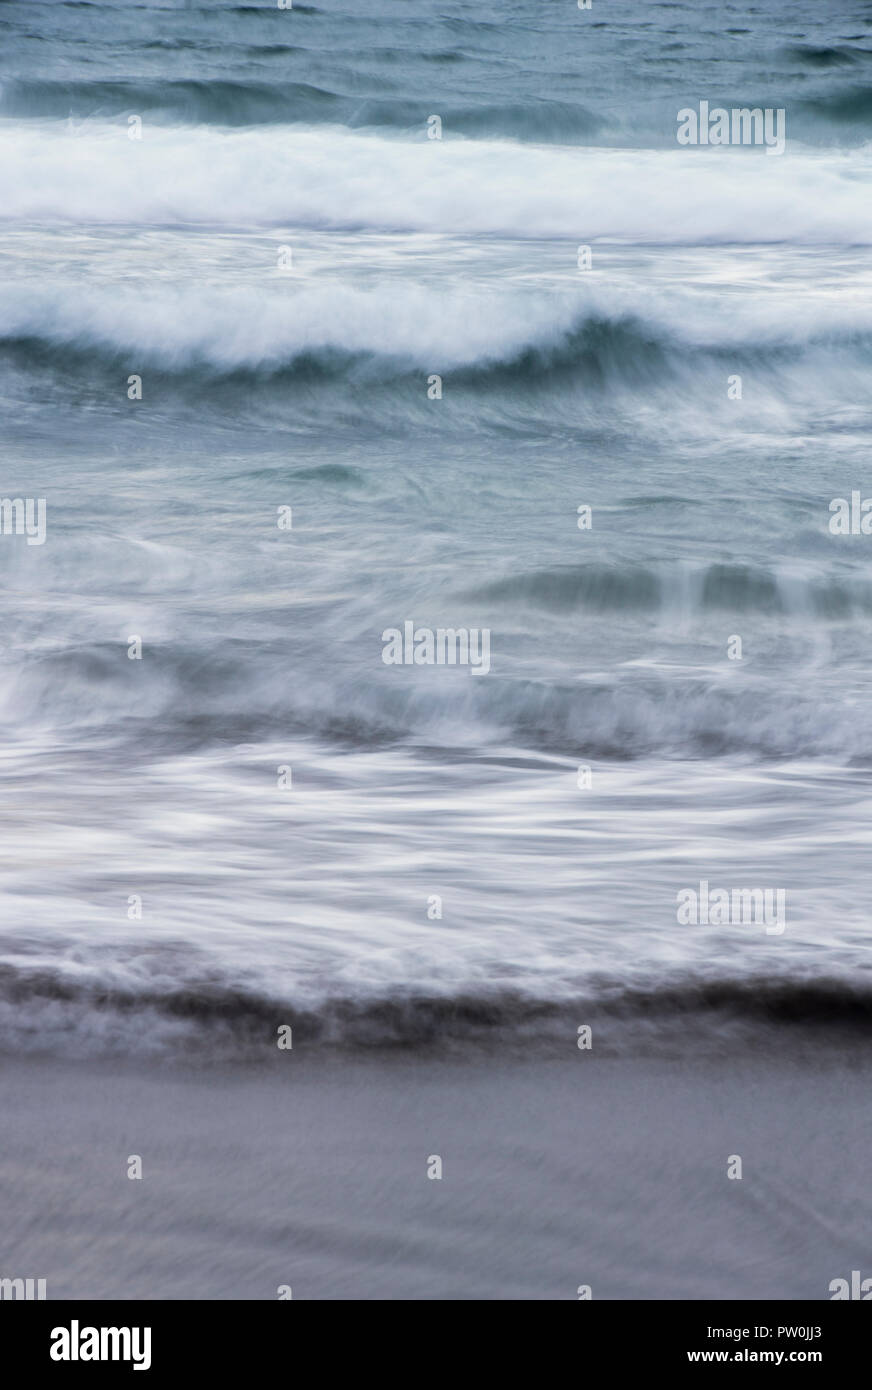 Long exposure of waves and the incoming tide splashing onto a sandy beach Stock Photo